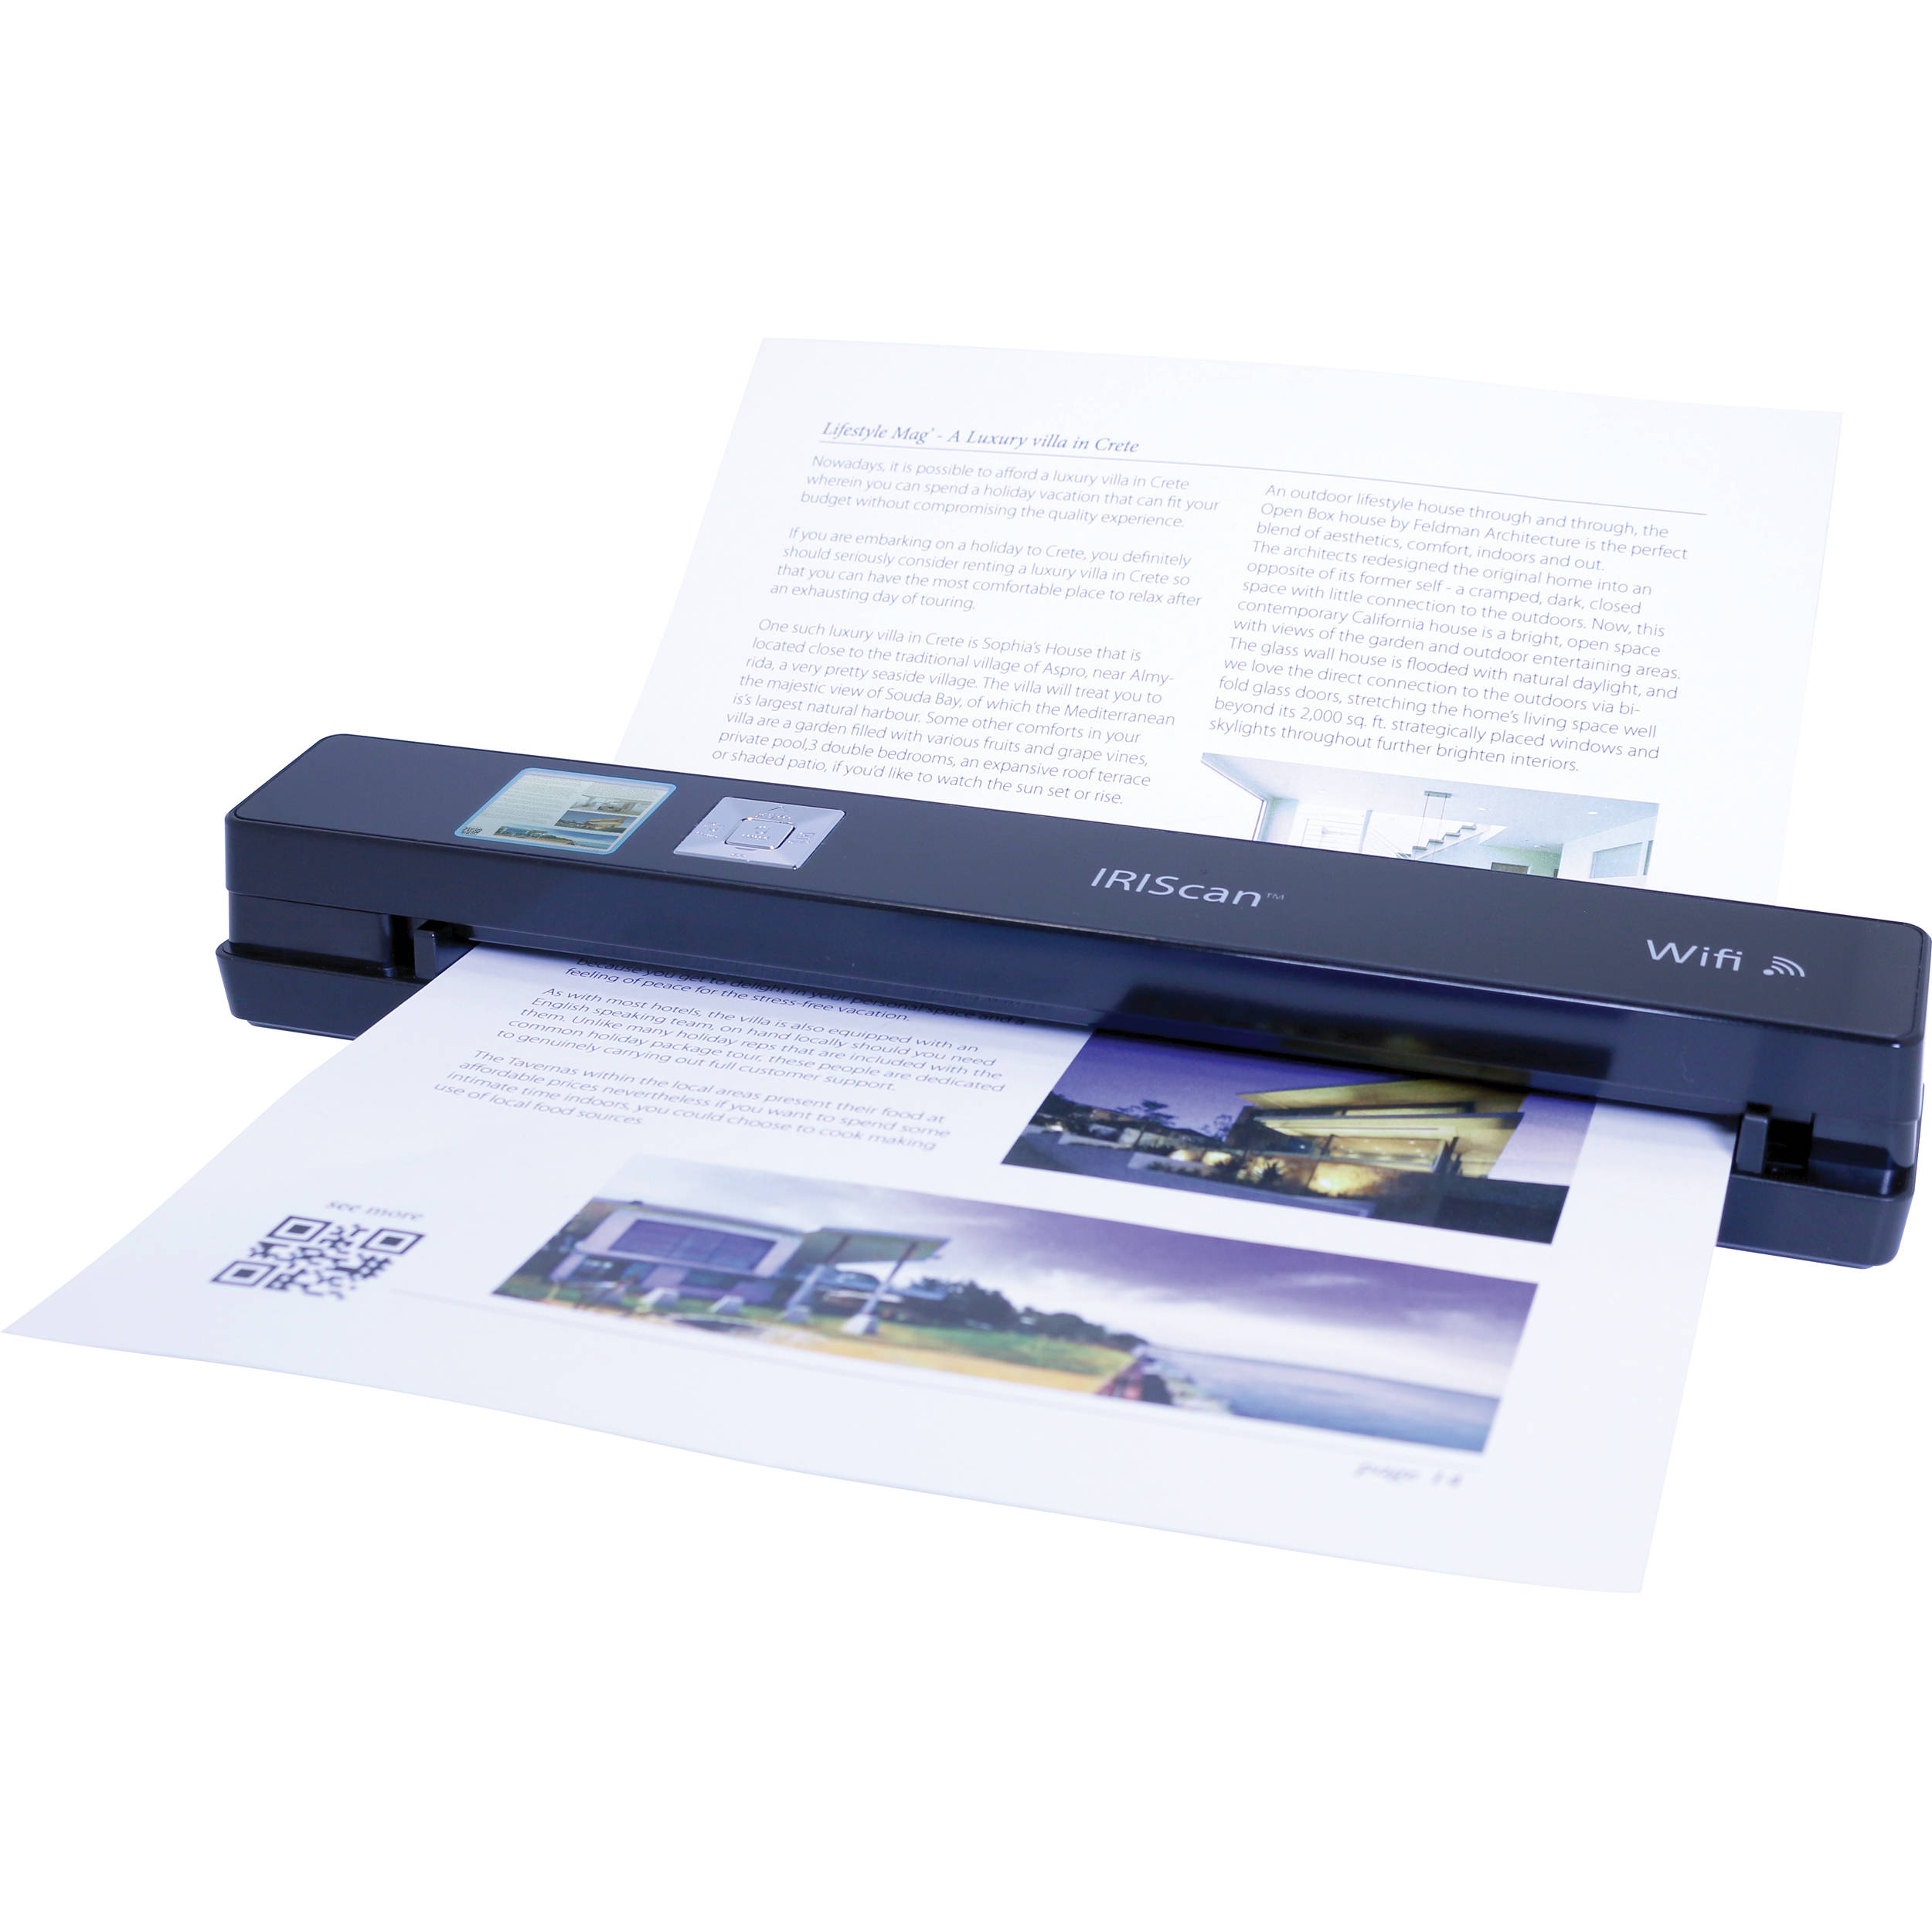 for scanner with desktop ordering availability dr weable scanners team multiple stock canon photos before feeder confirm photo multi document